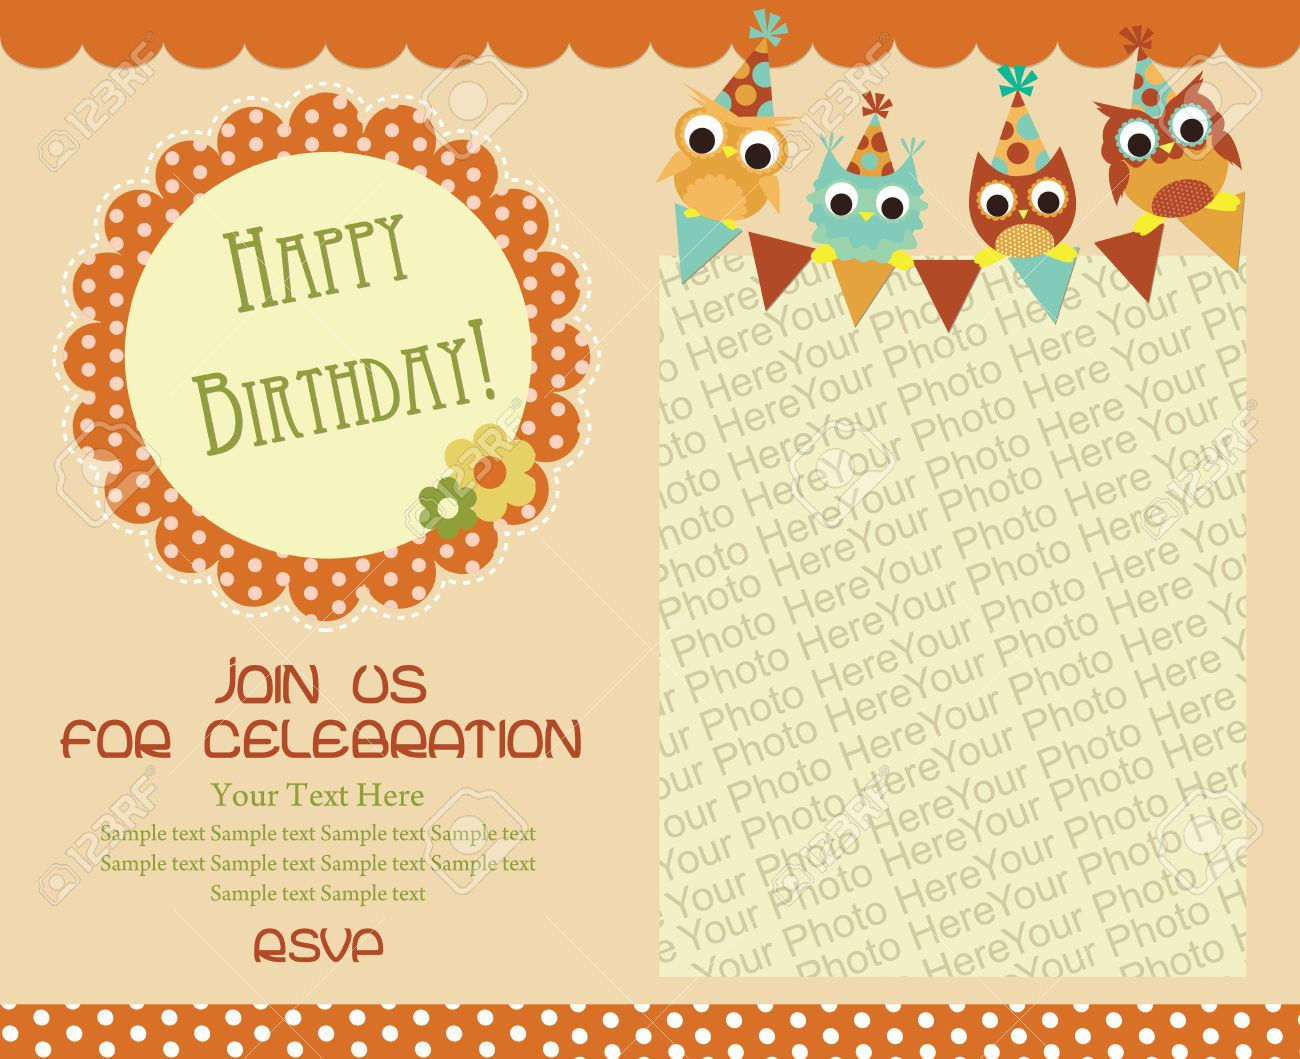 birthday invitation card template with photo ; happy-birthday-invitation-card-template